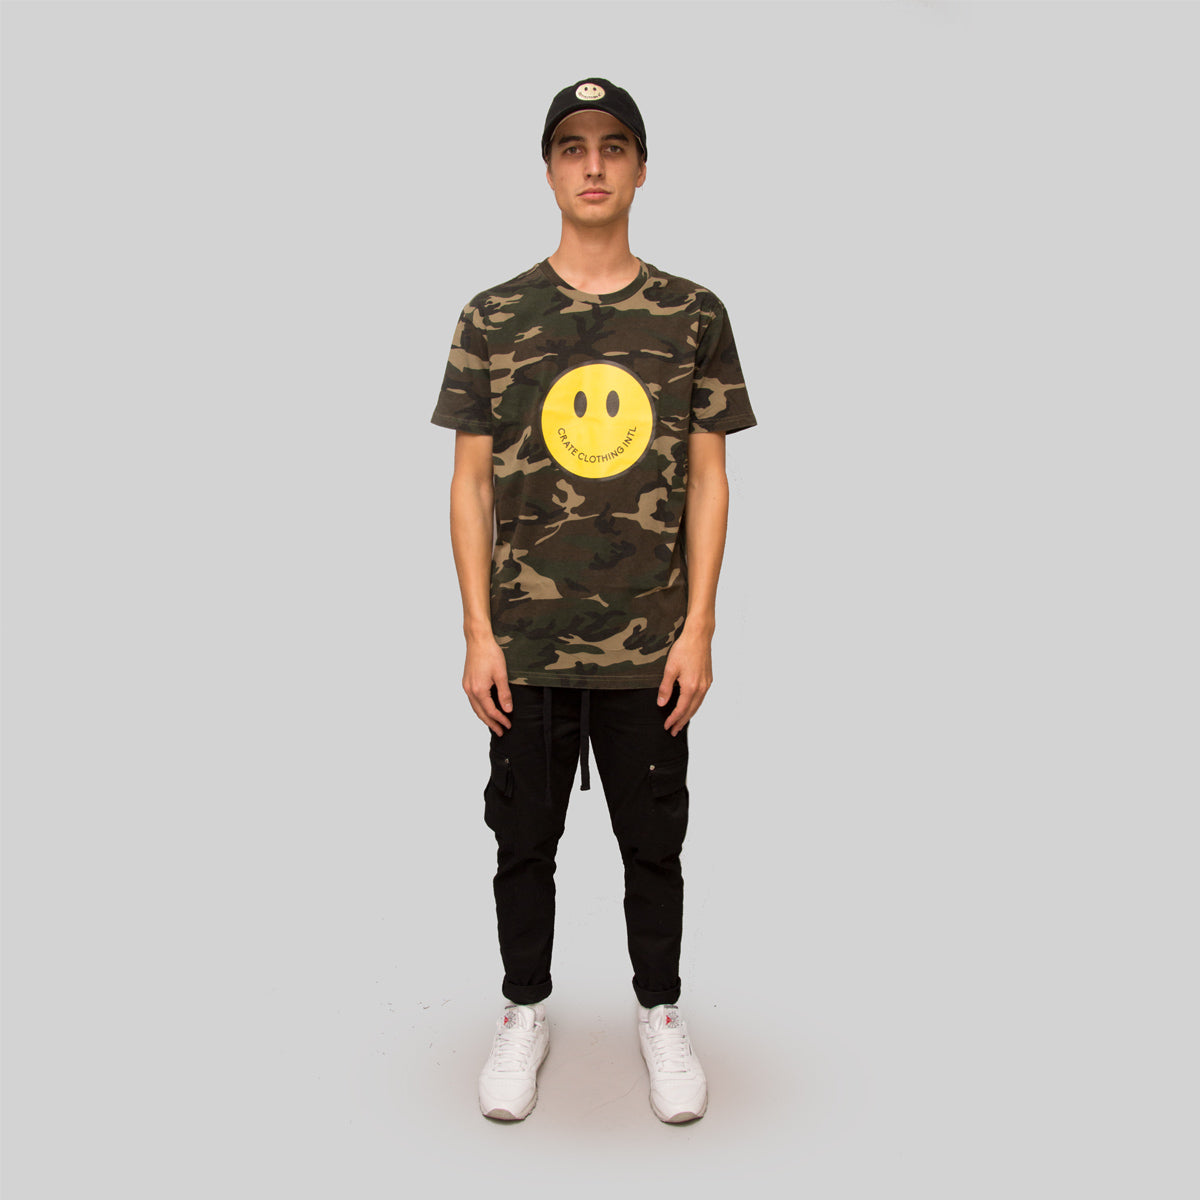 Mens Smiley T-Shirt